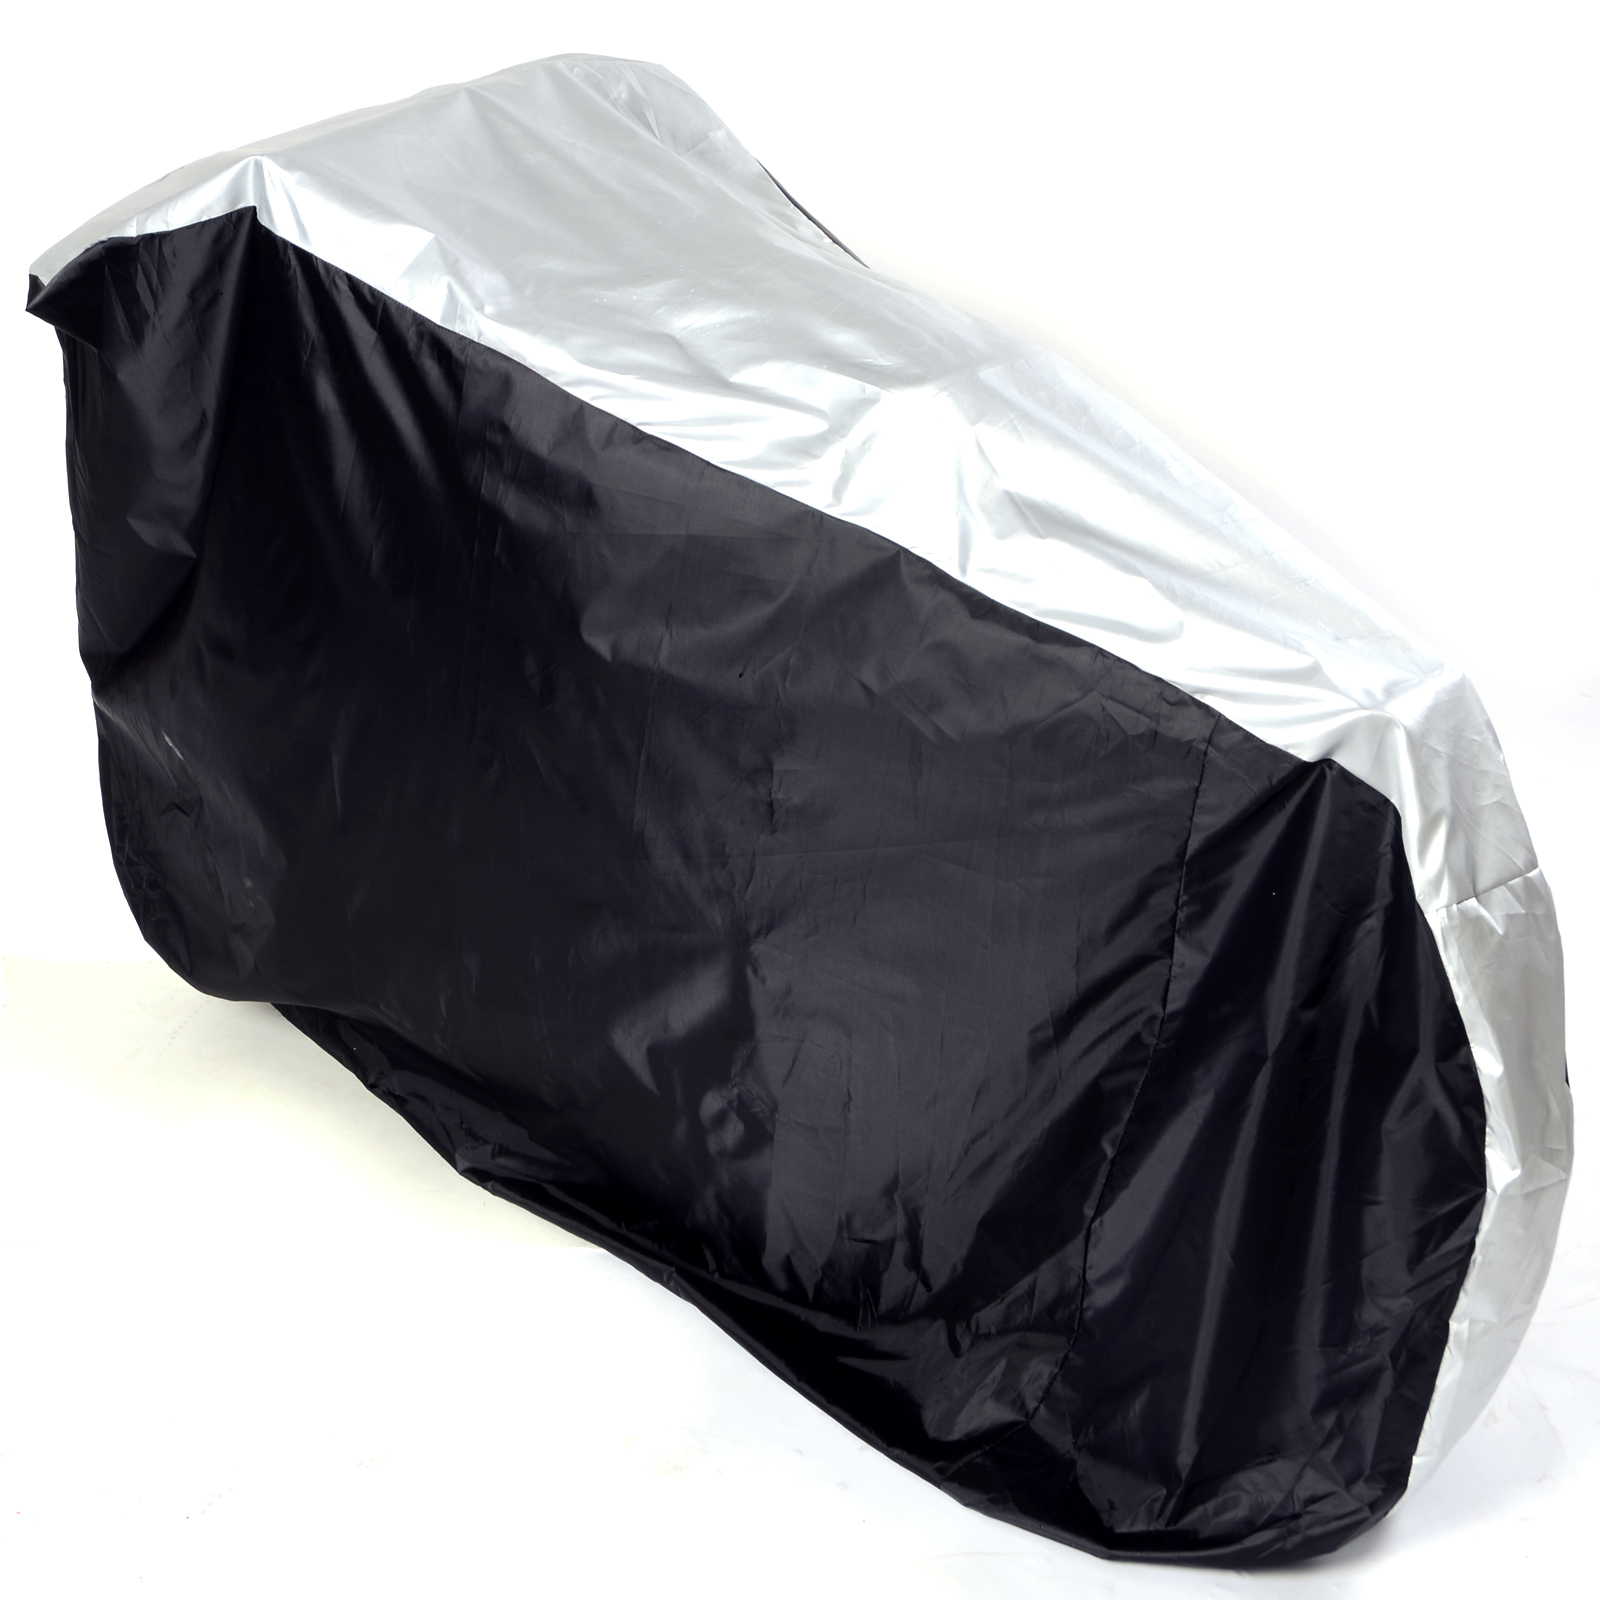 Waterproof Bicycle Cover BMX Bike Dust Rain Garage Storage Outdoor Protector